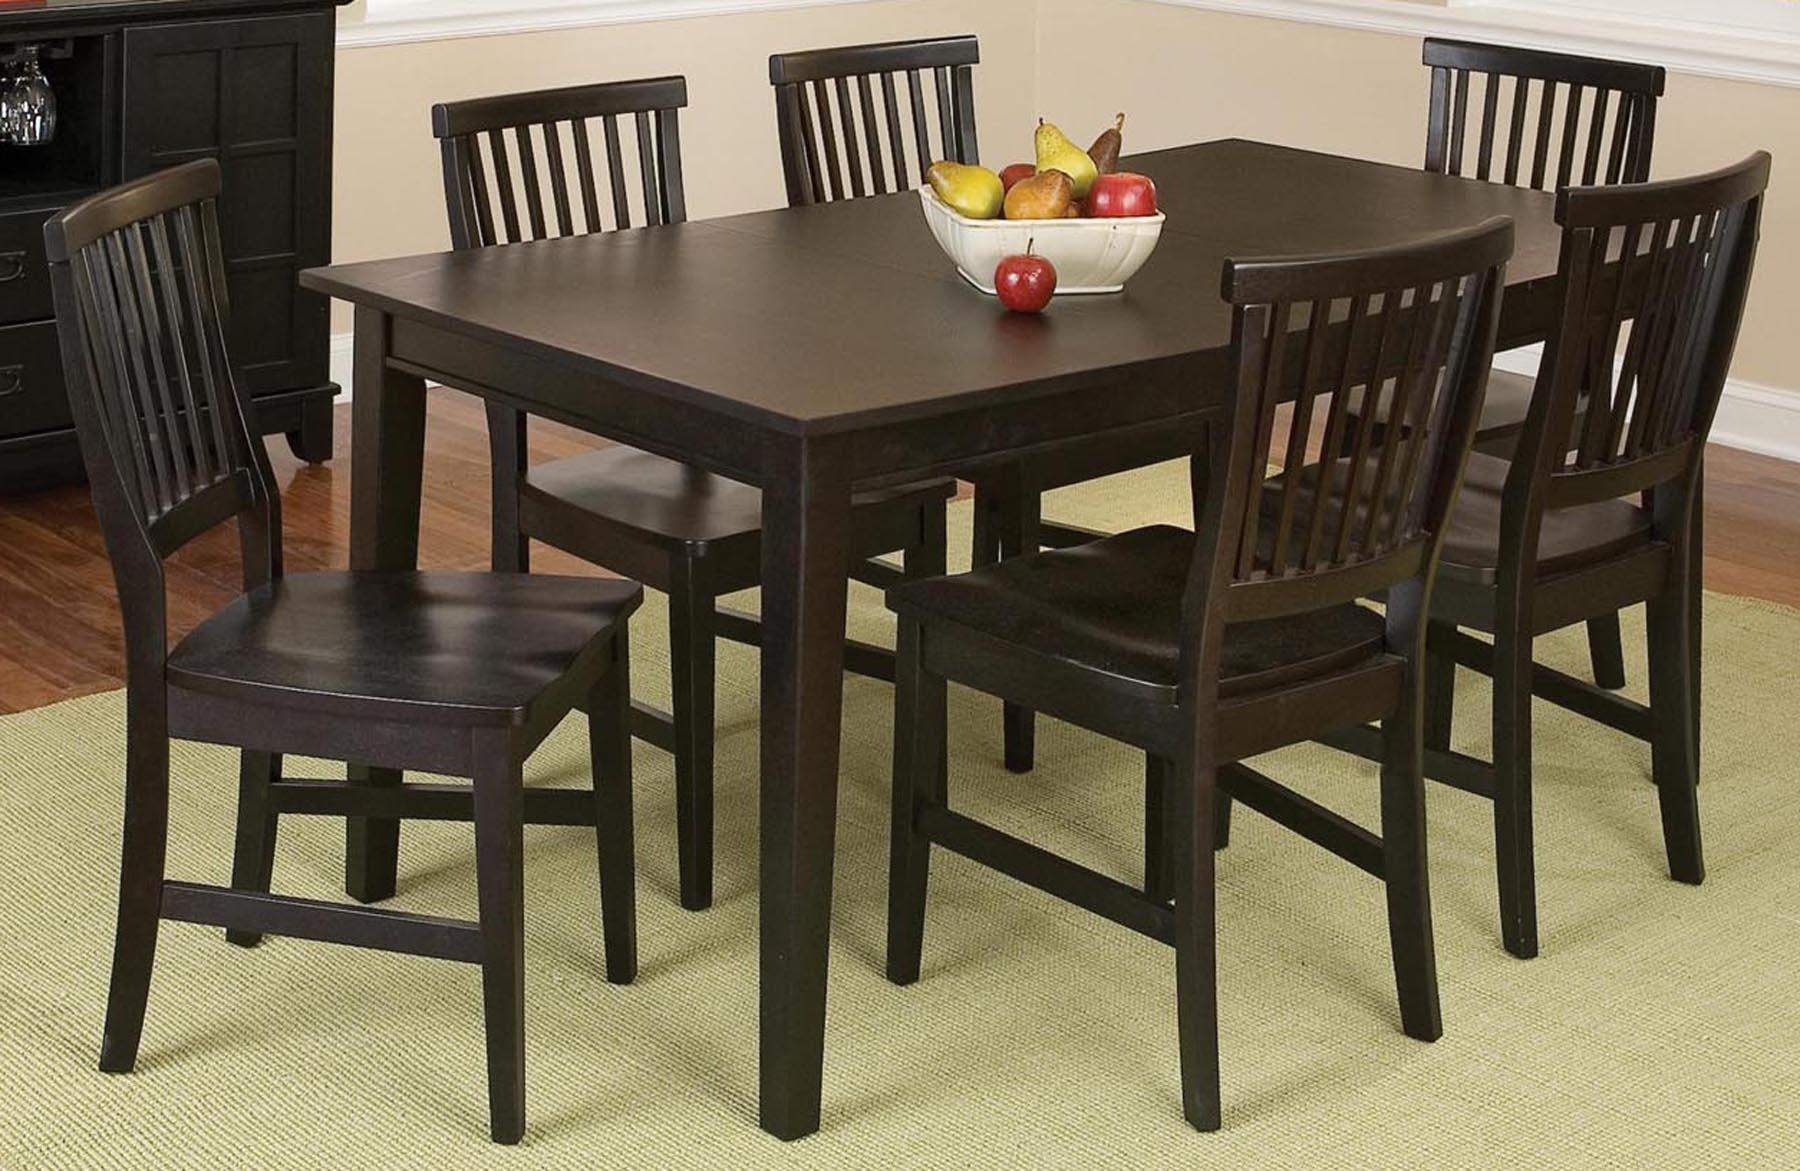 Arts and crafts 7 piece dining set ojcommerce for 7 piece dining set